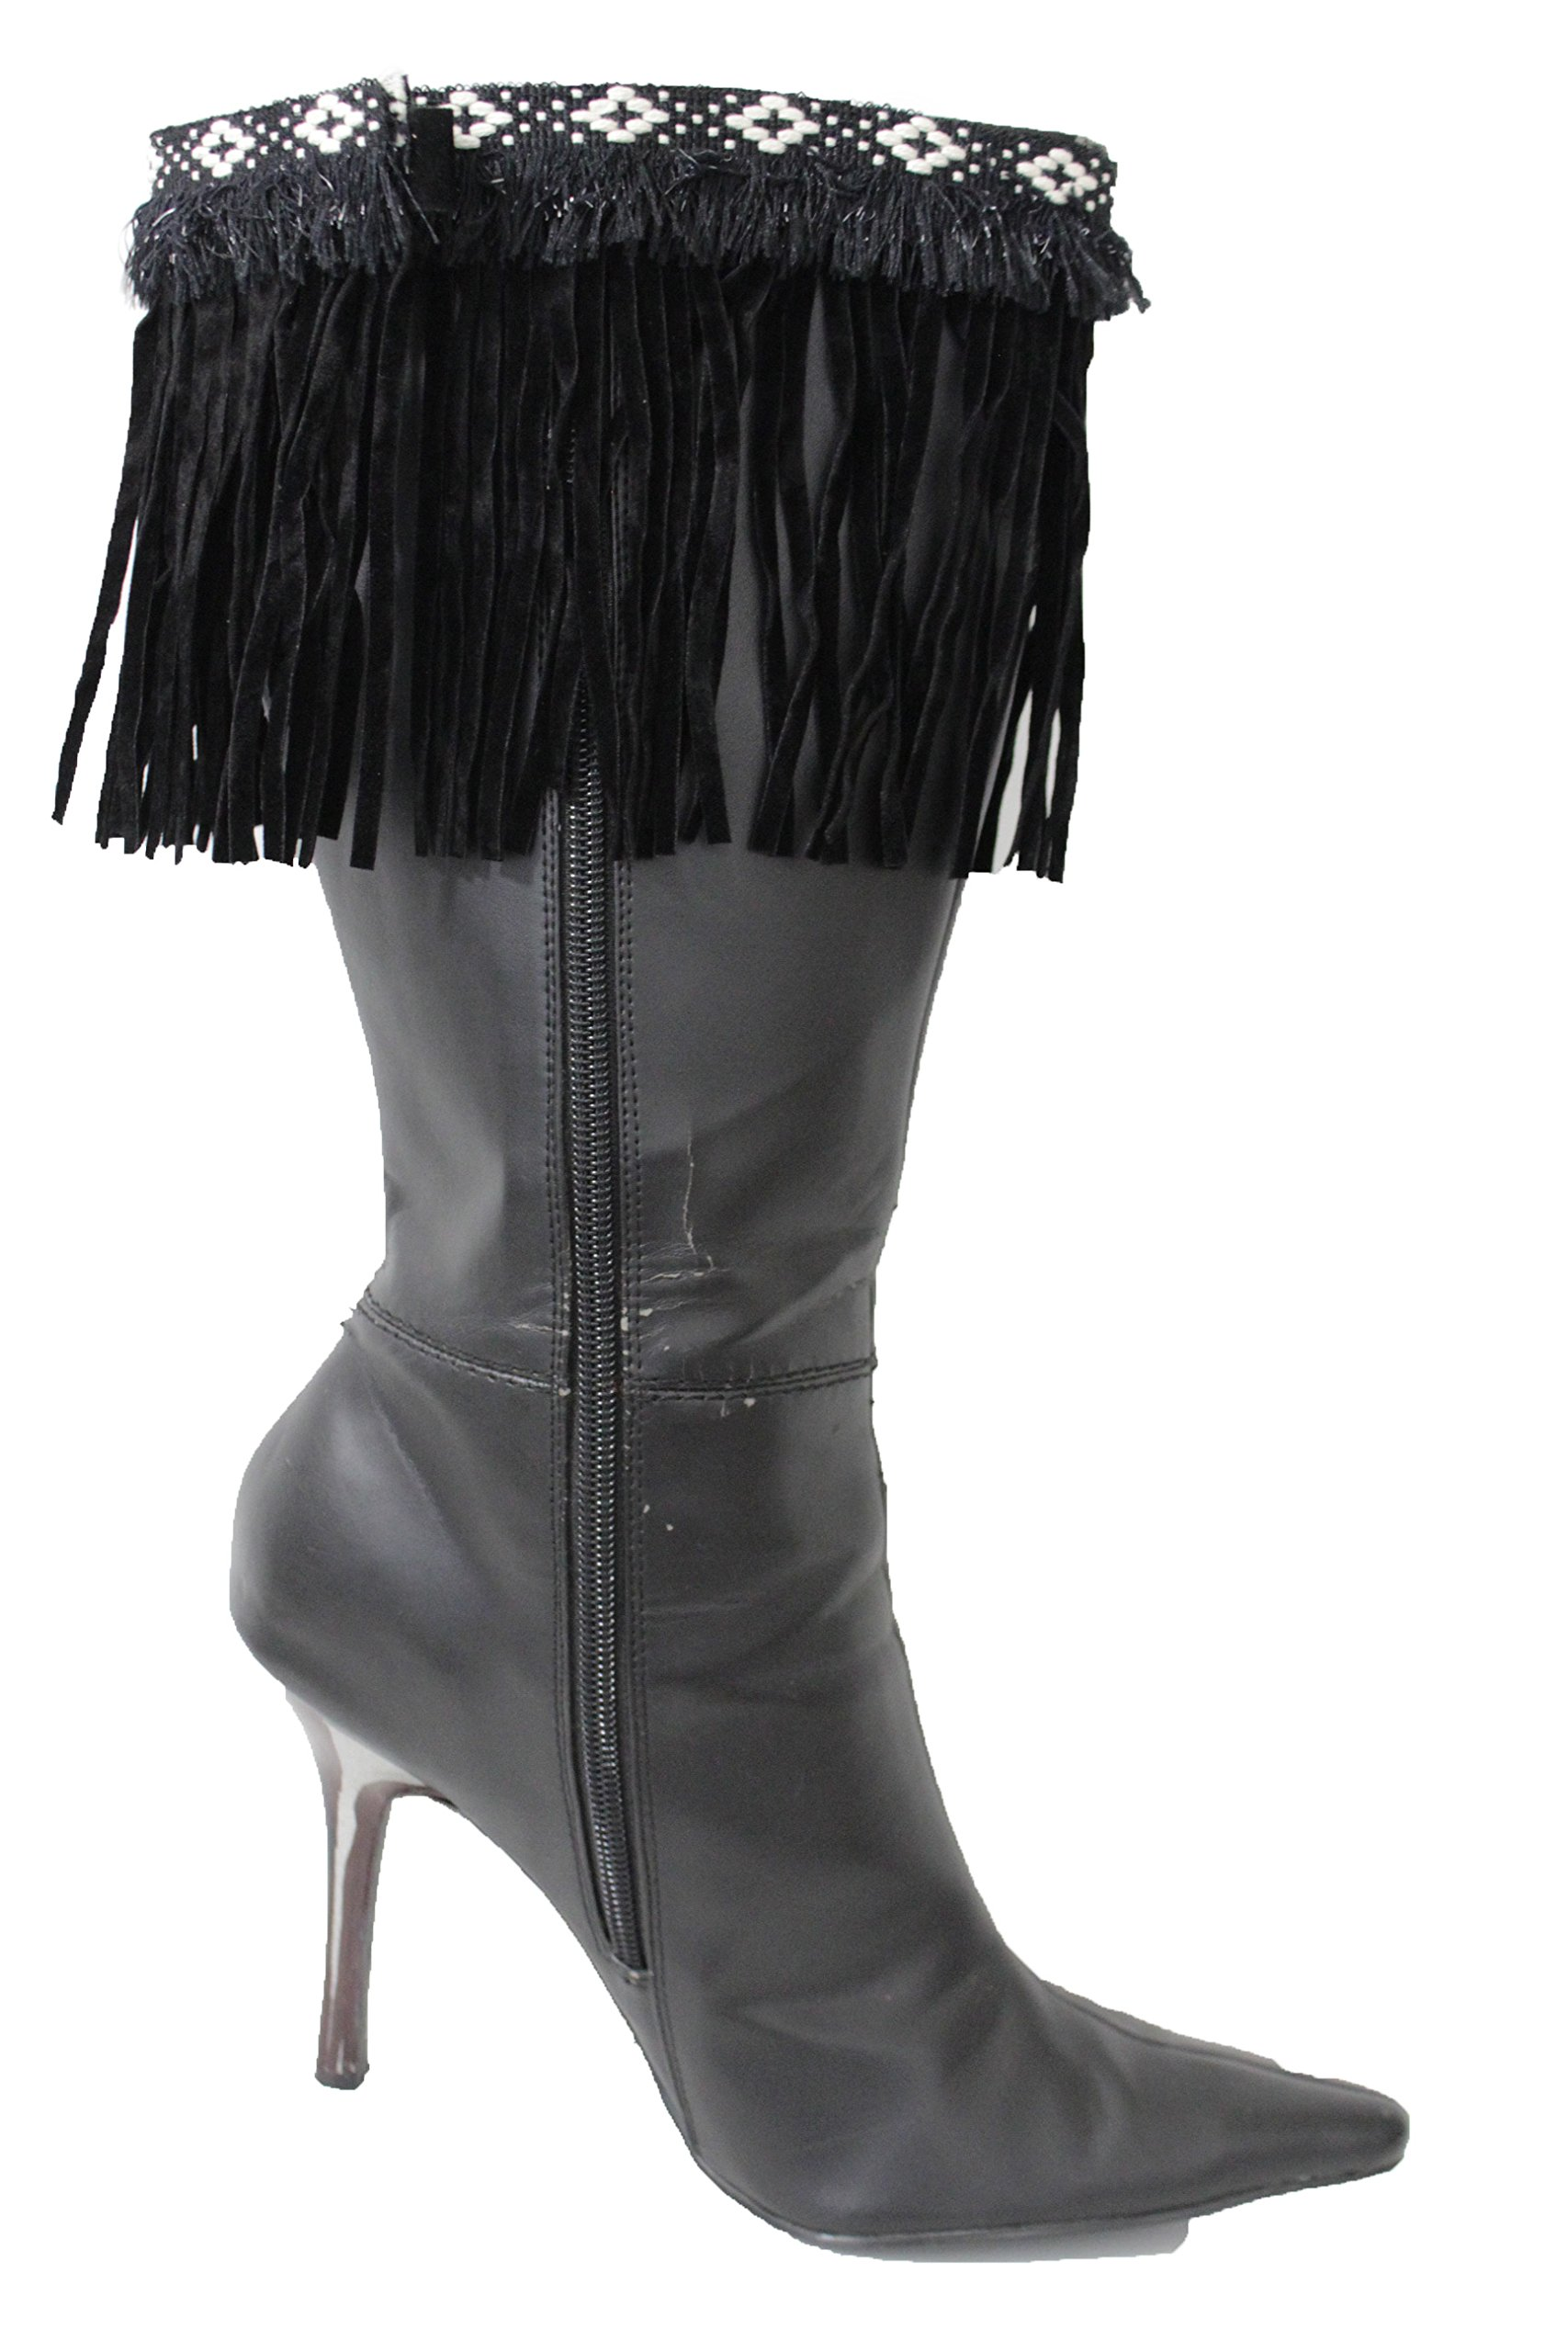 TFJ Women Western Fashion Boot Toppers Cover Faux Suede Leather Fringes Black